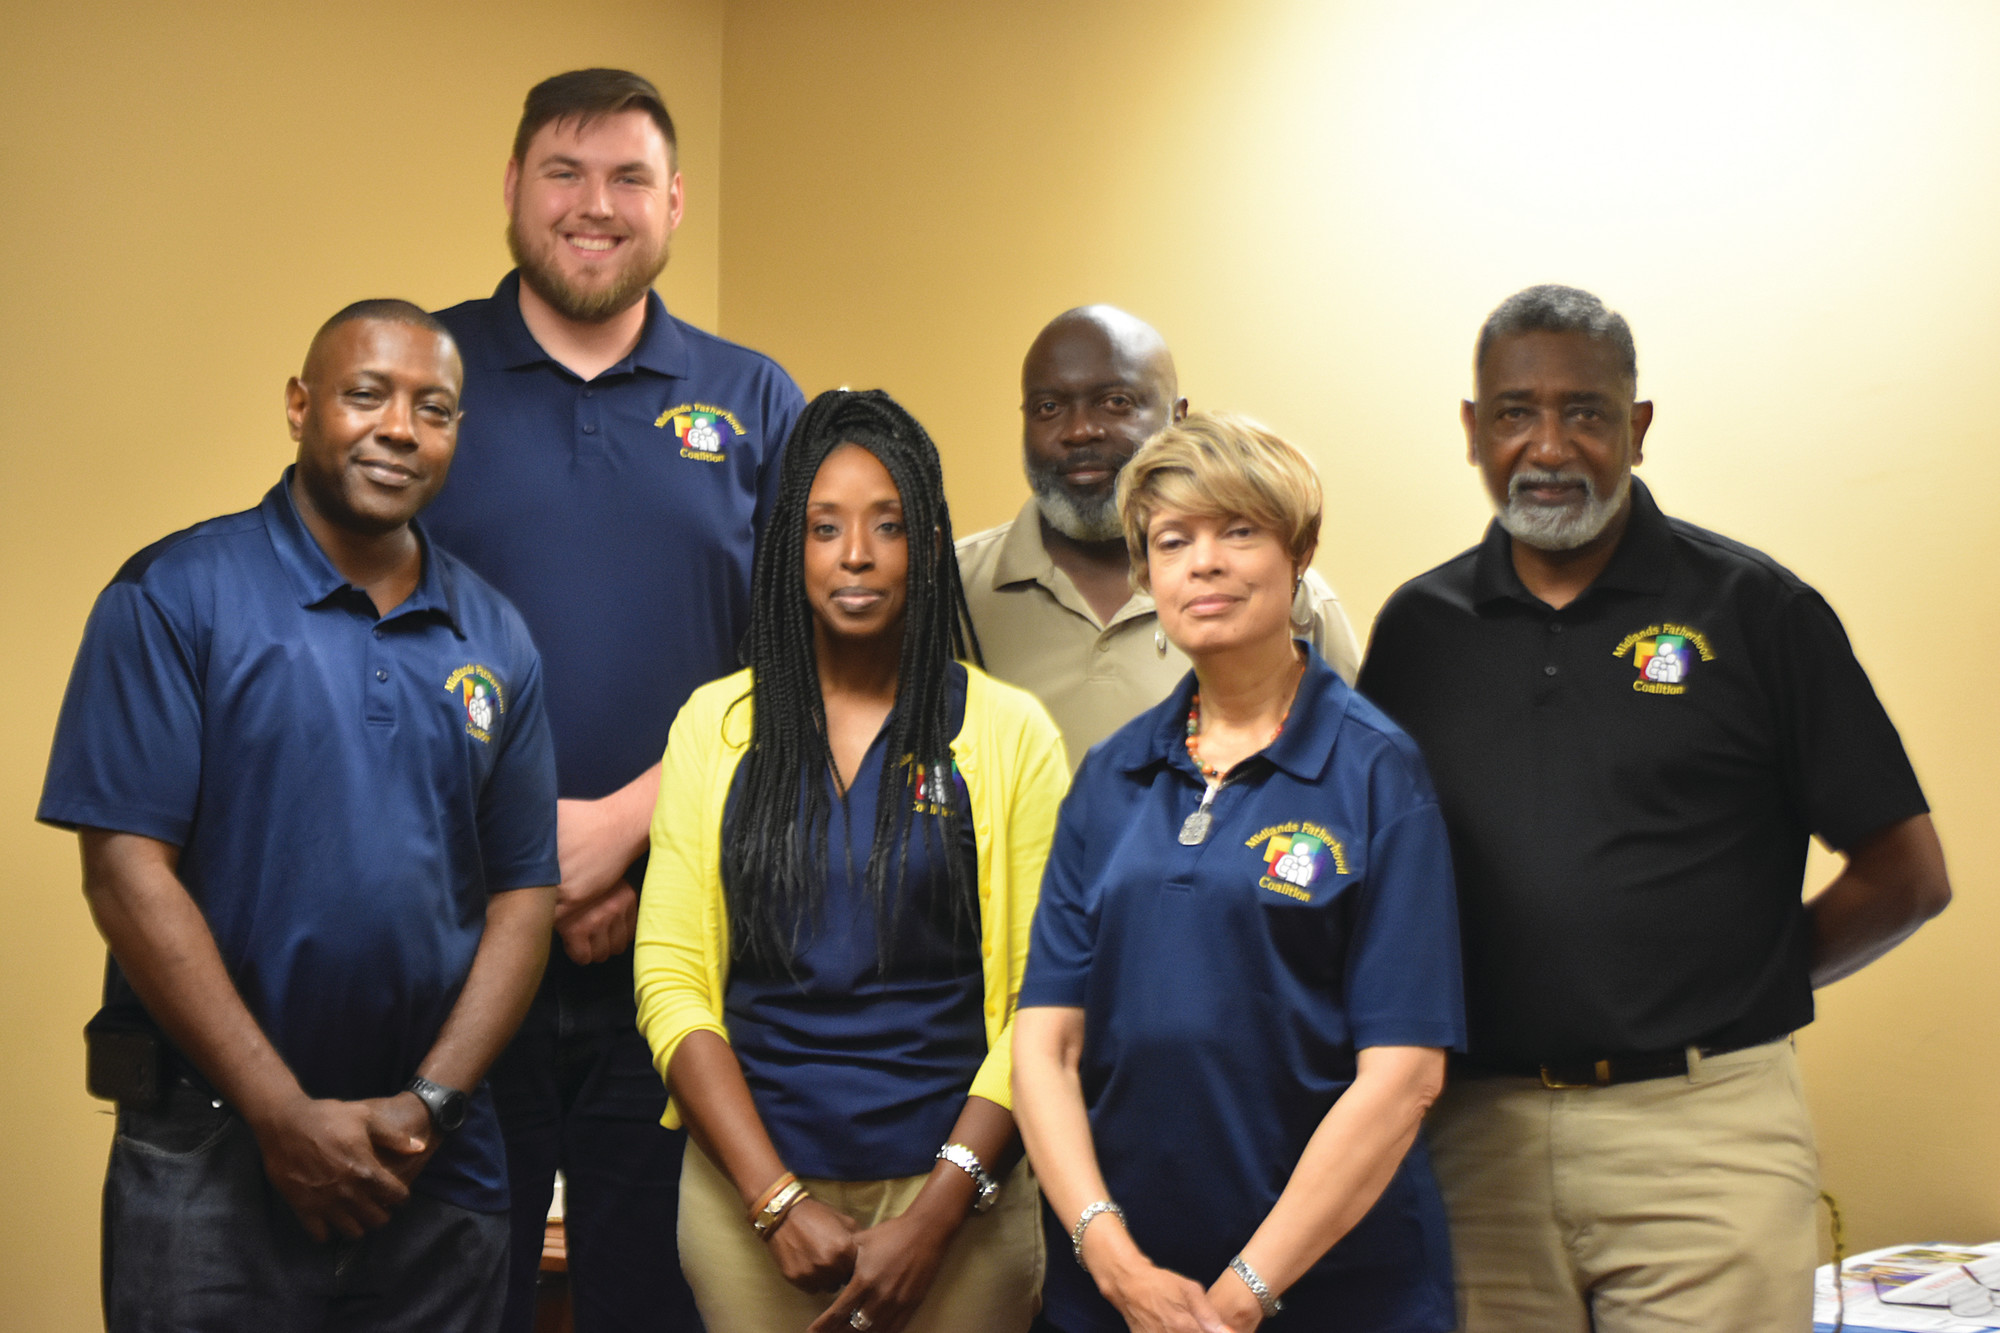 Midlands Fatherhood Coalition - Sumter is staffed with intervention specialists, job developers and outreach coordinators who are trained to assist fathers with finding the right avenues to change their lives and connect with their children.